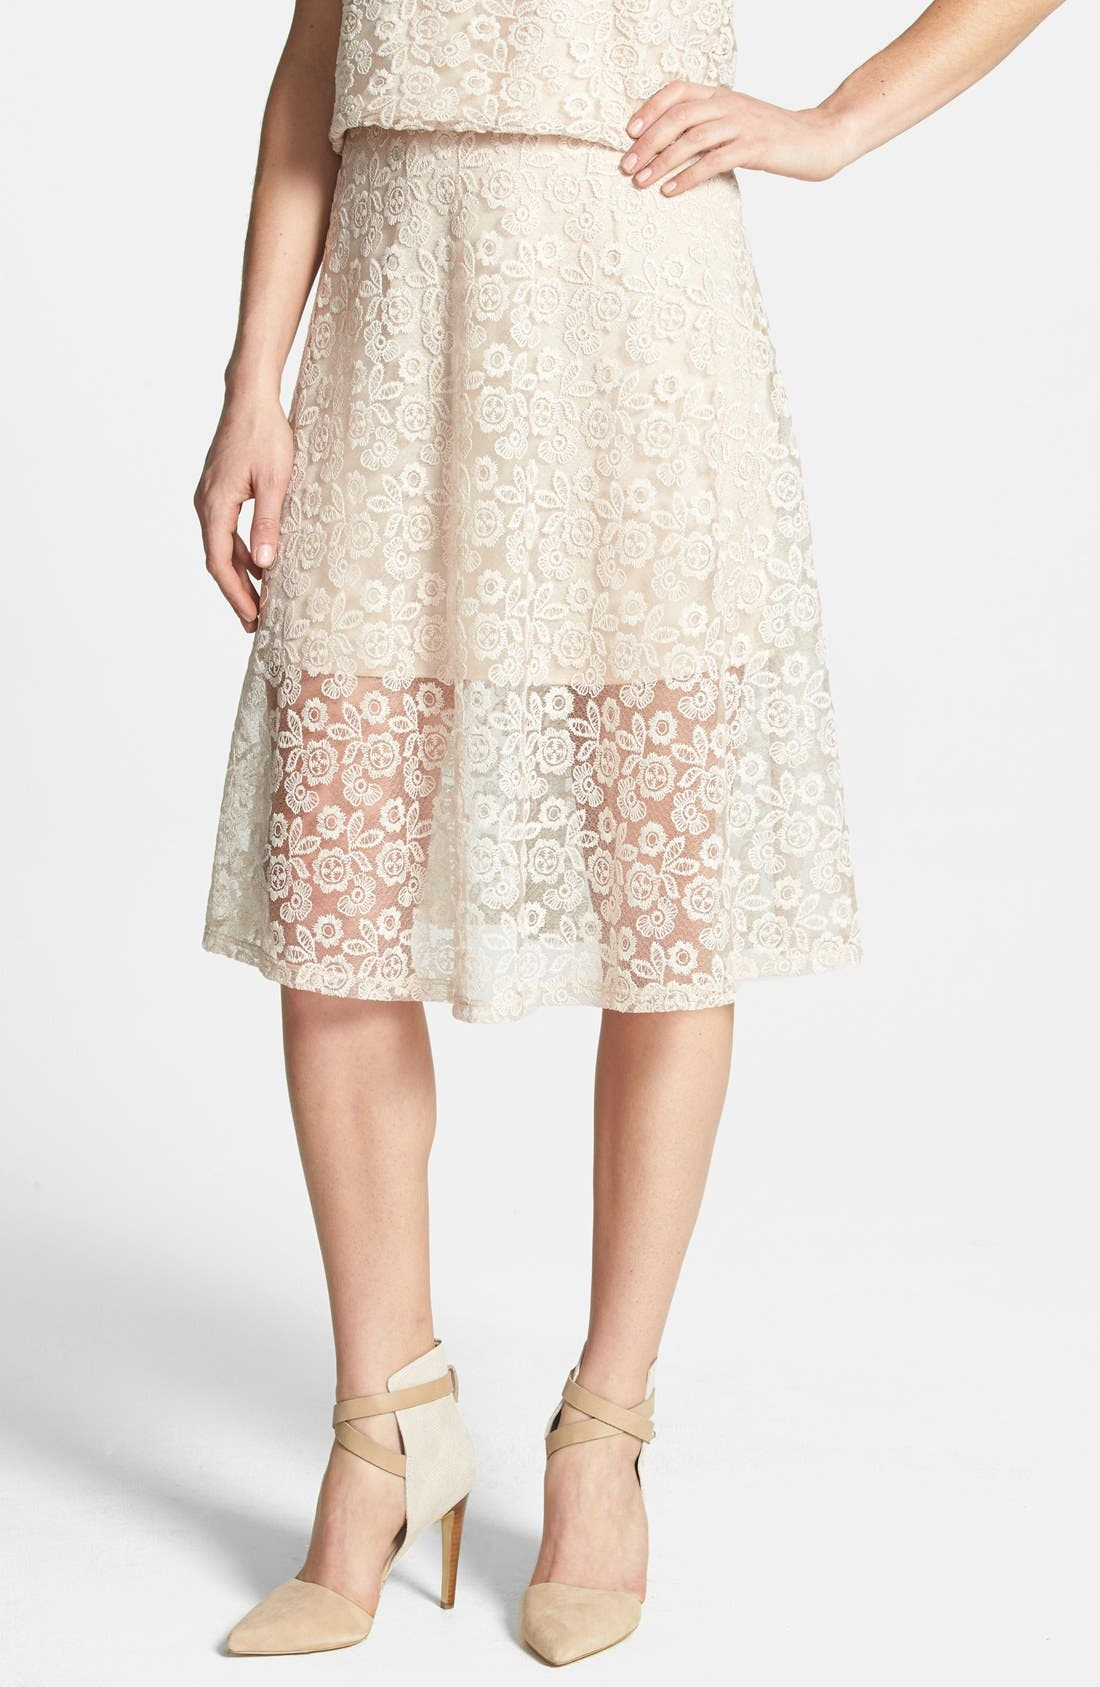 Alternate Image 1 Selected - Wayf Embroidered Lace A-Line Skirt